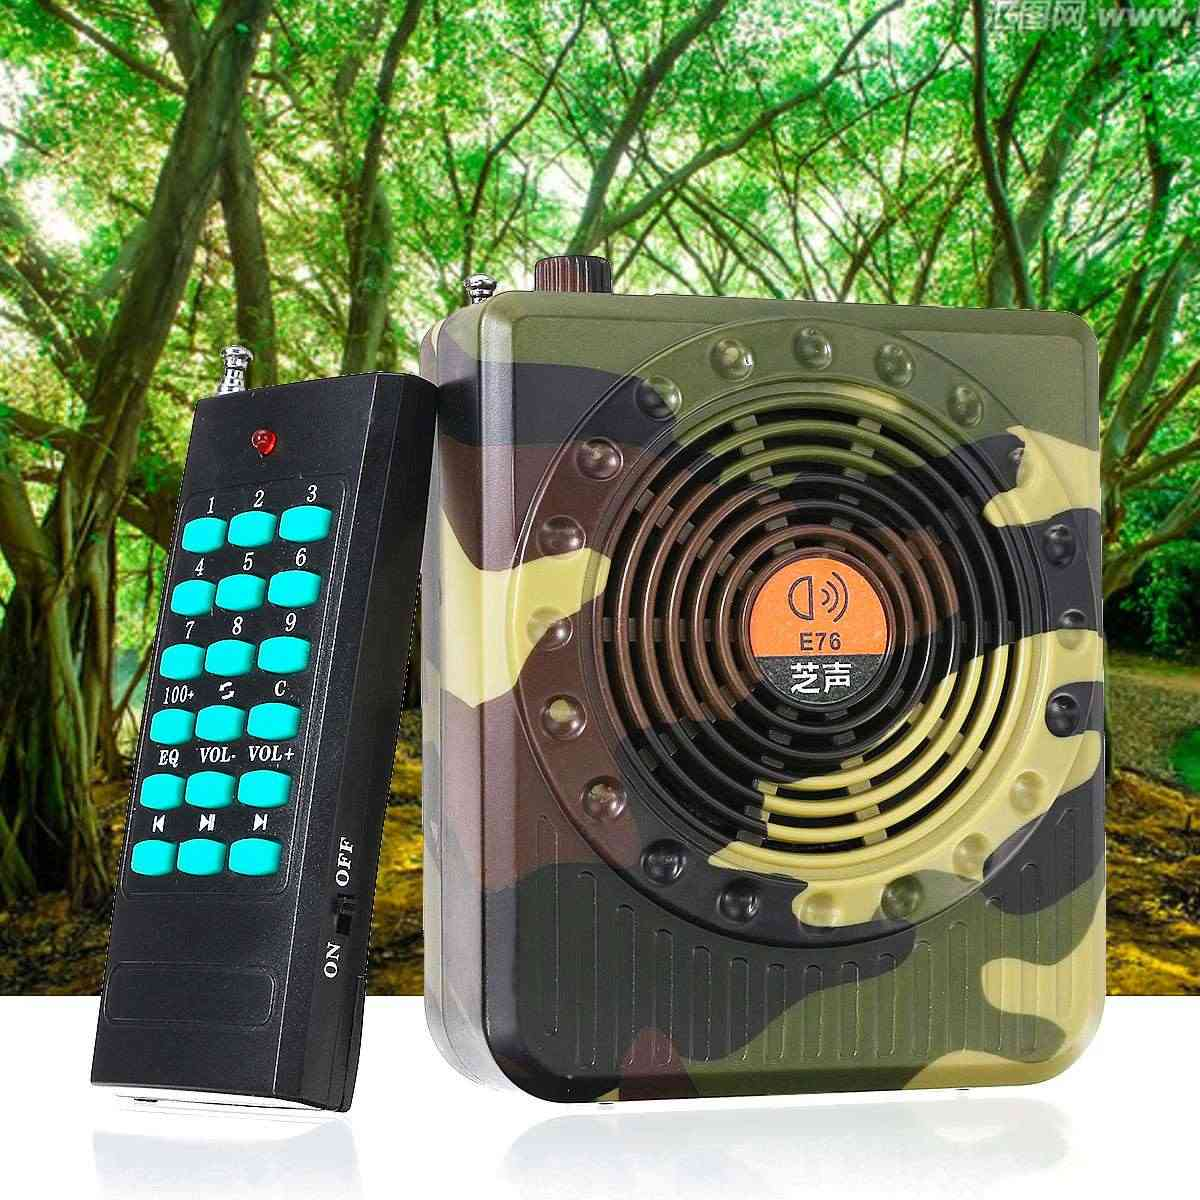 Camouflage Remote Control Bird Caller Speaker For Hunting & Fm Radio Mp3 Player